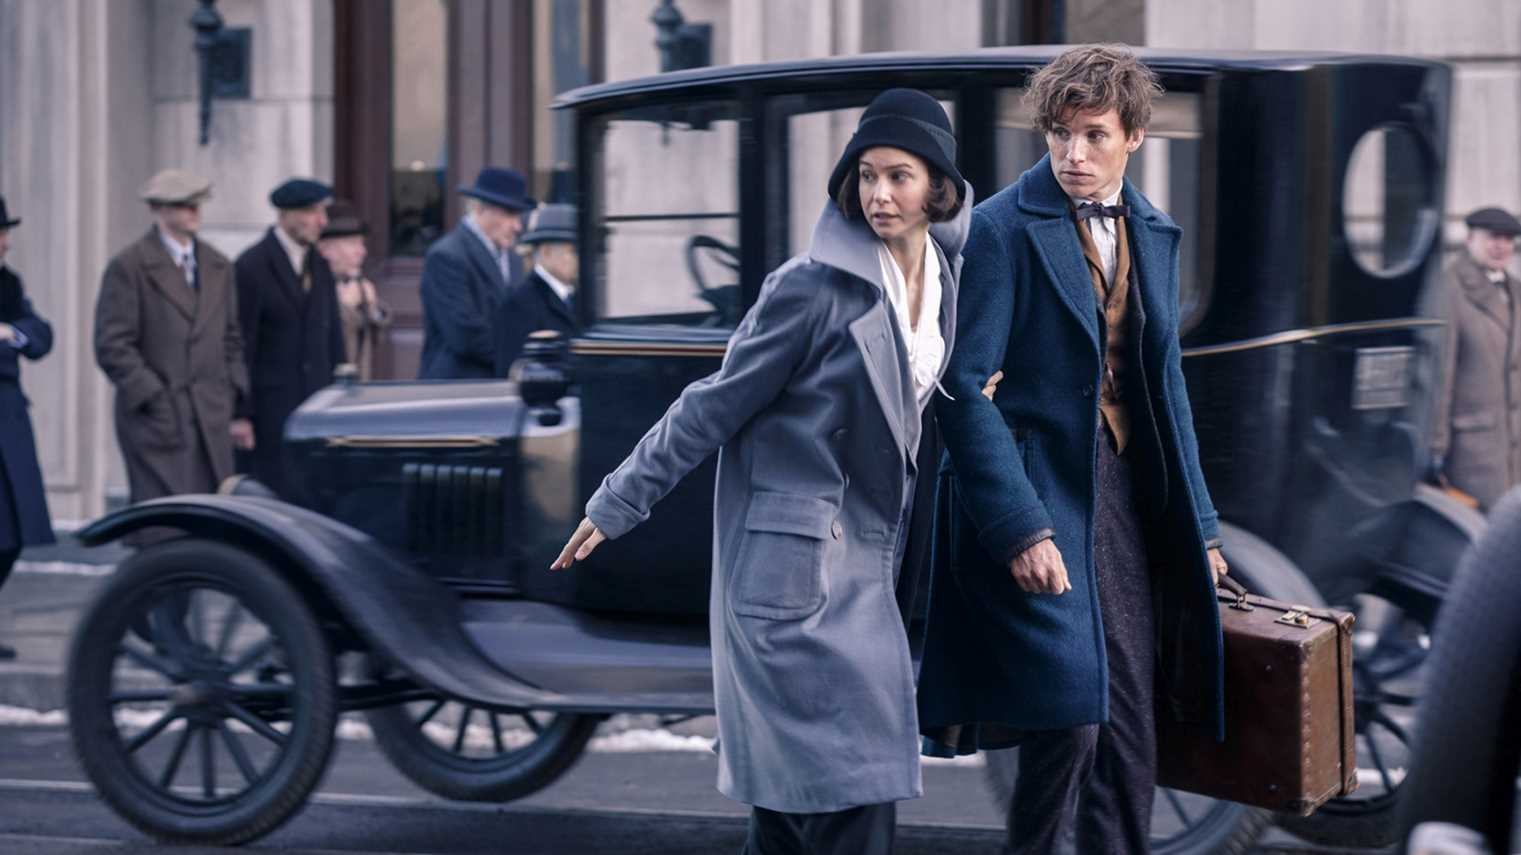 Will Fantastic Beasts retain the magic of Harry Potter?